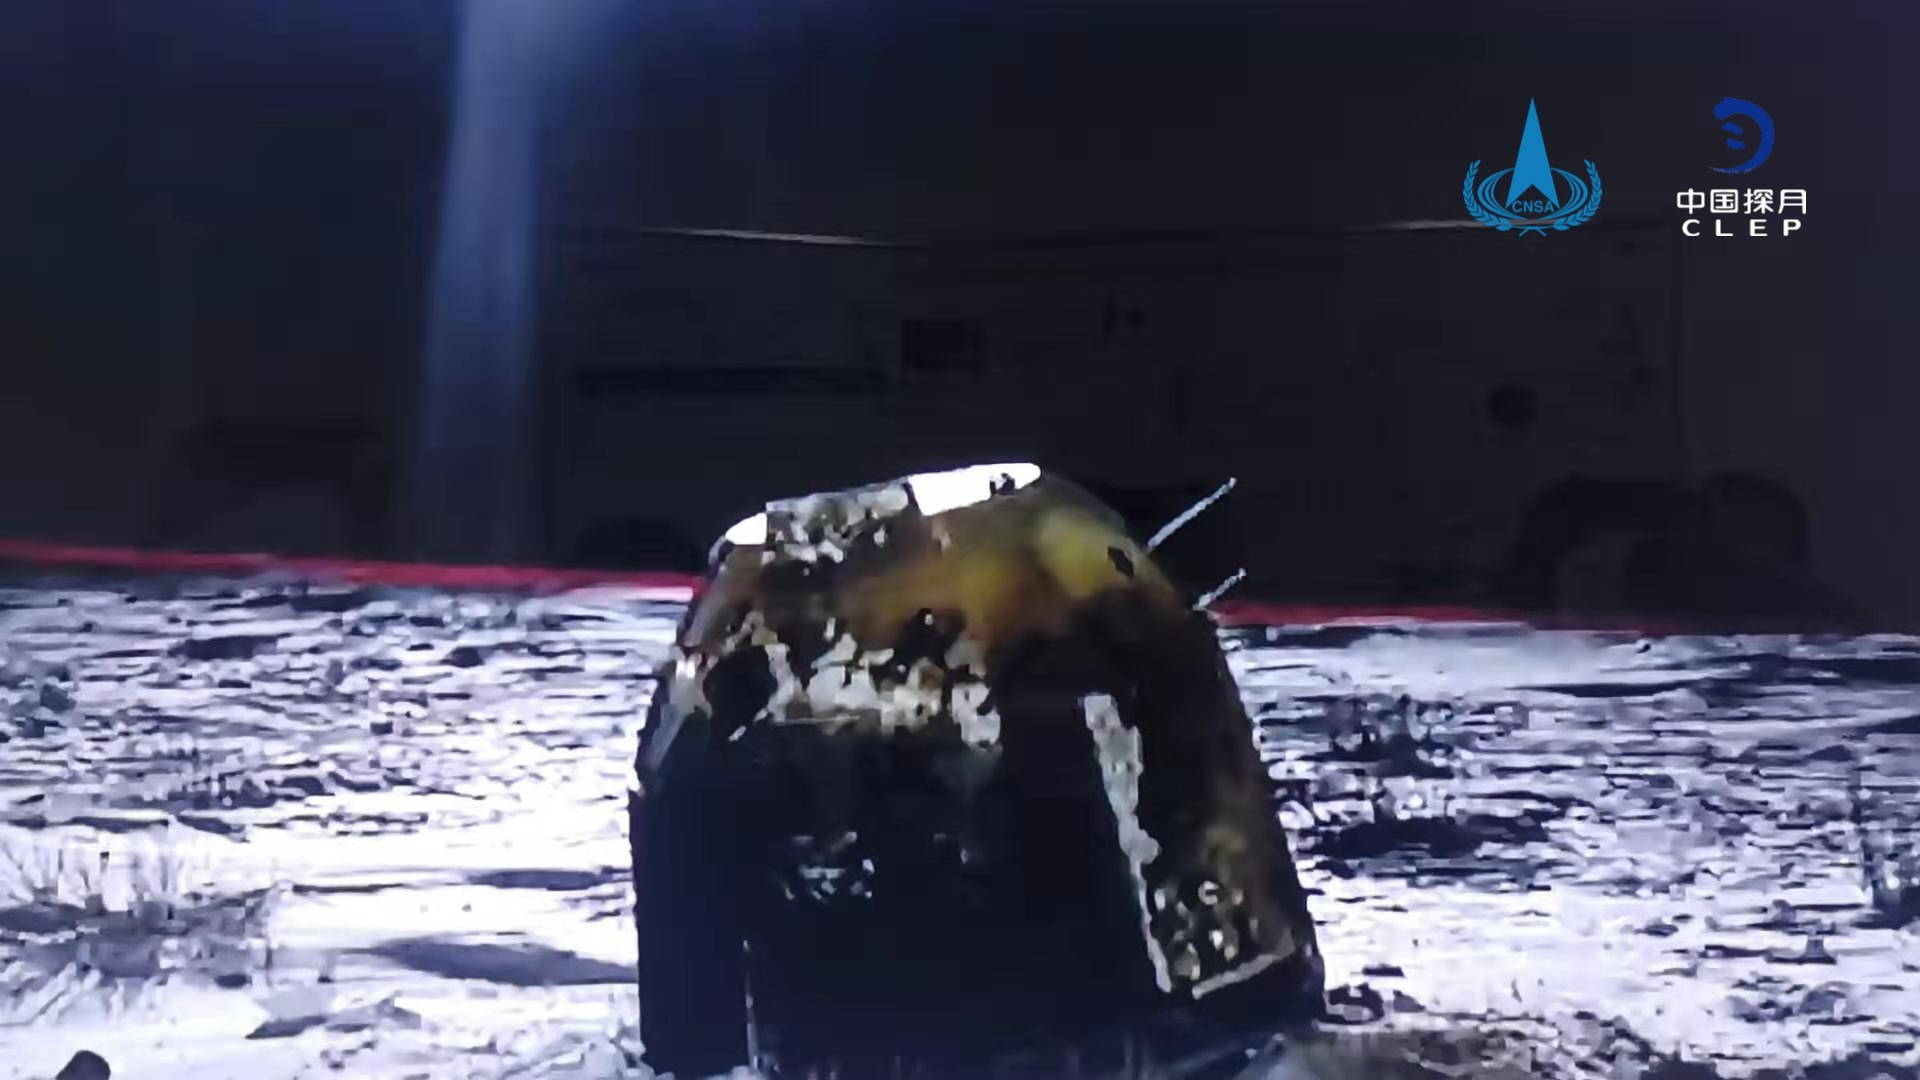 China's Chang'e 5 moon samples are headed to the lab thumbnail